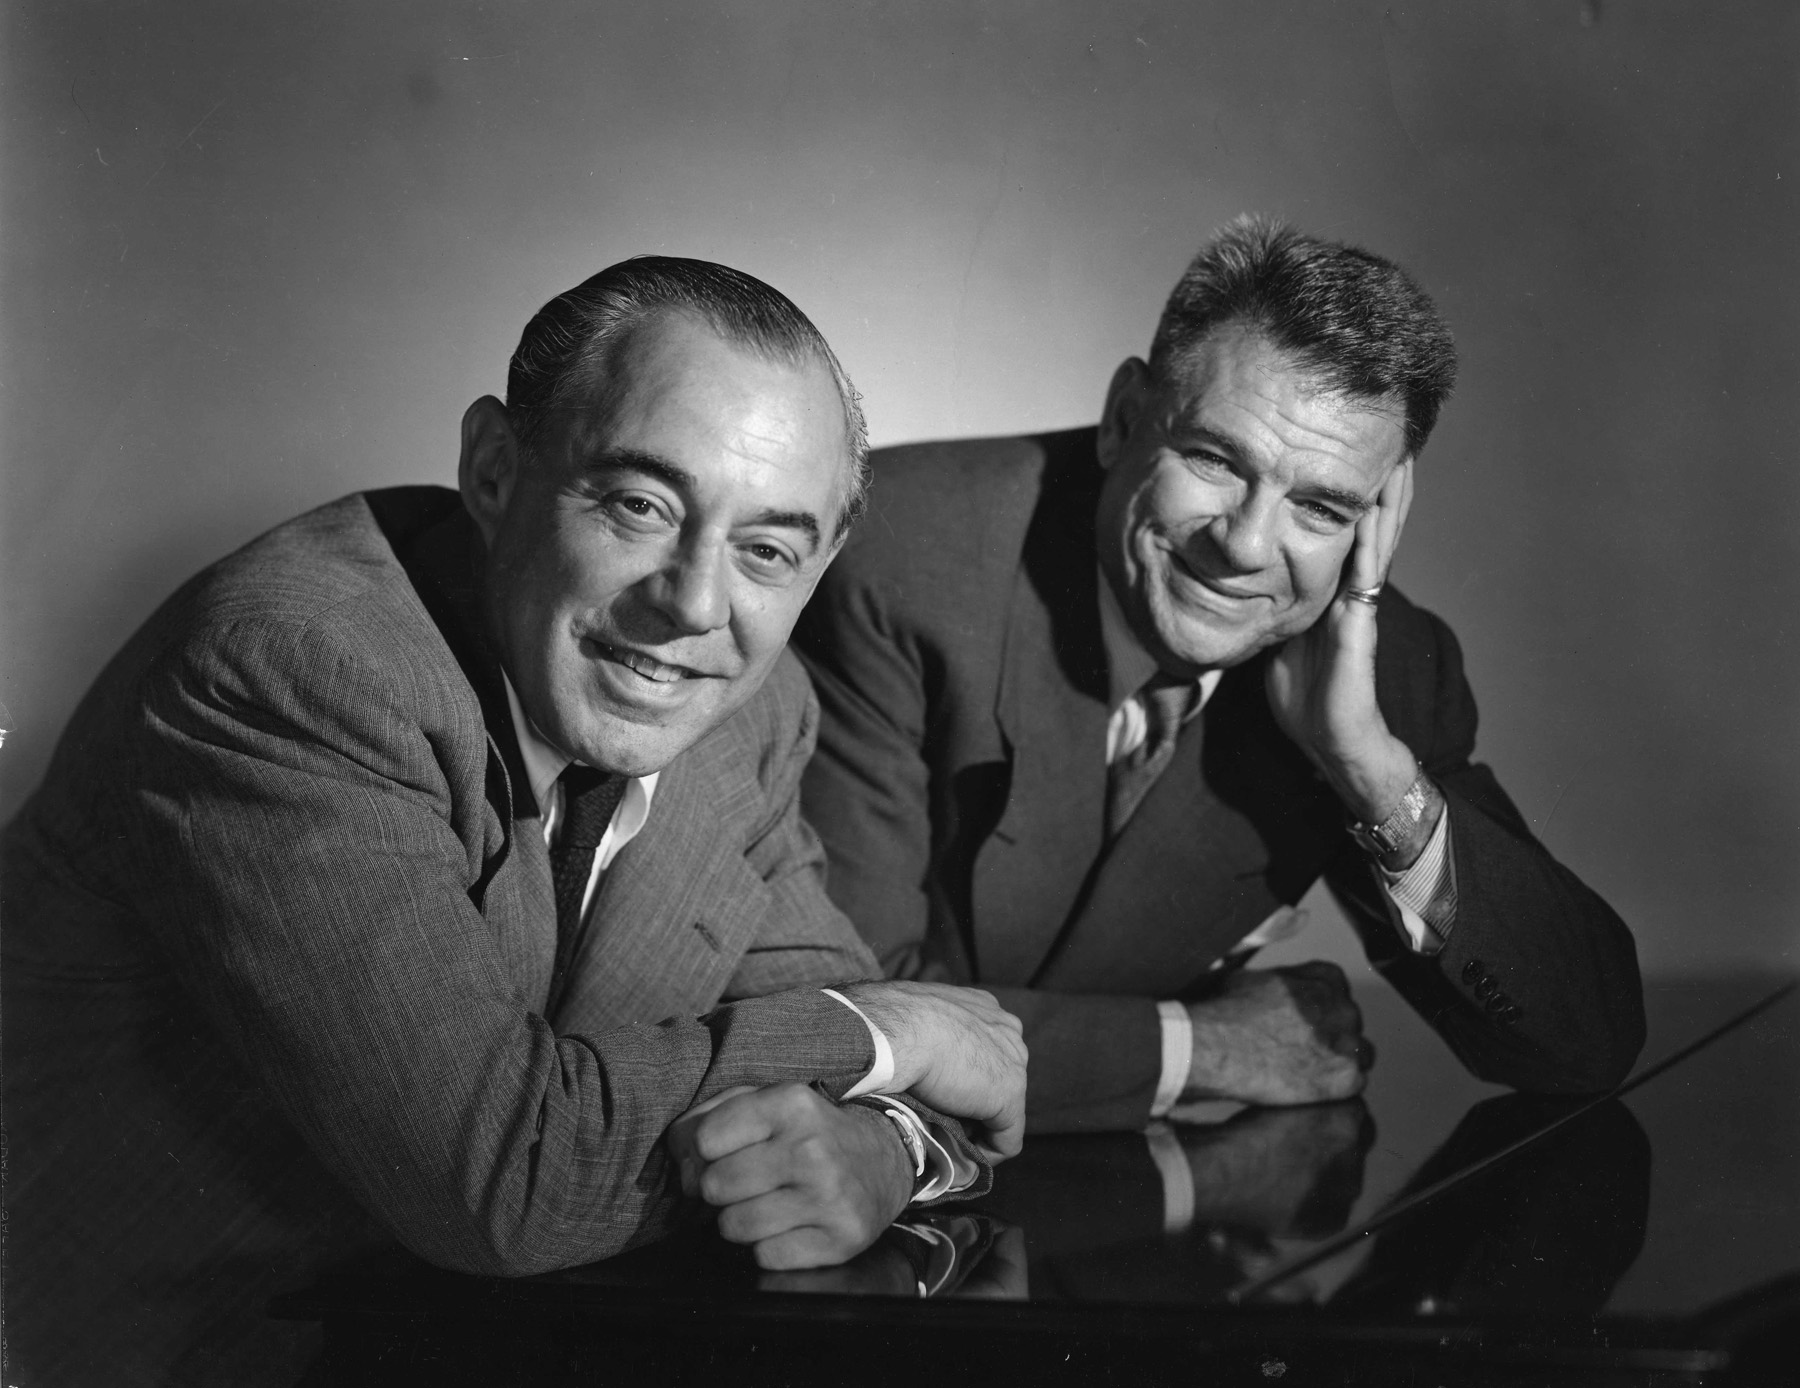 rodgers and hammerstein - The Sound of MusicMs. Staudt